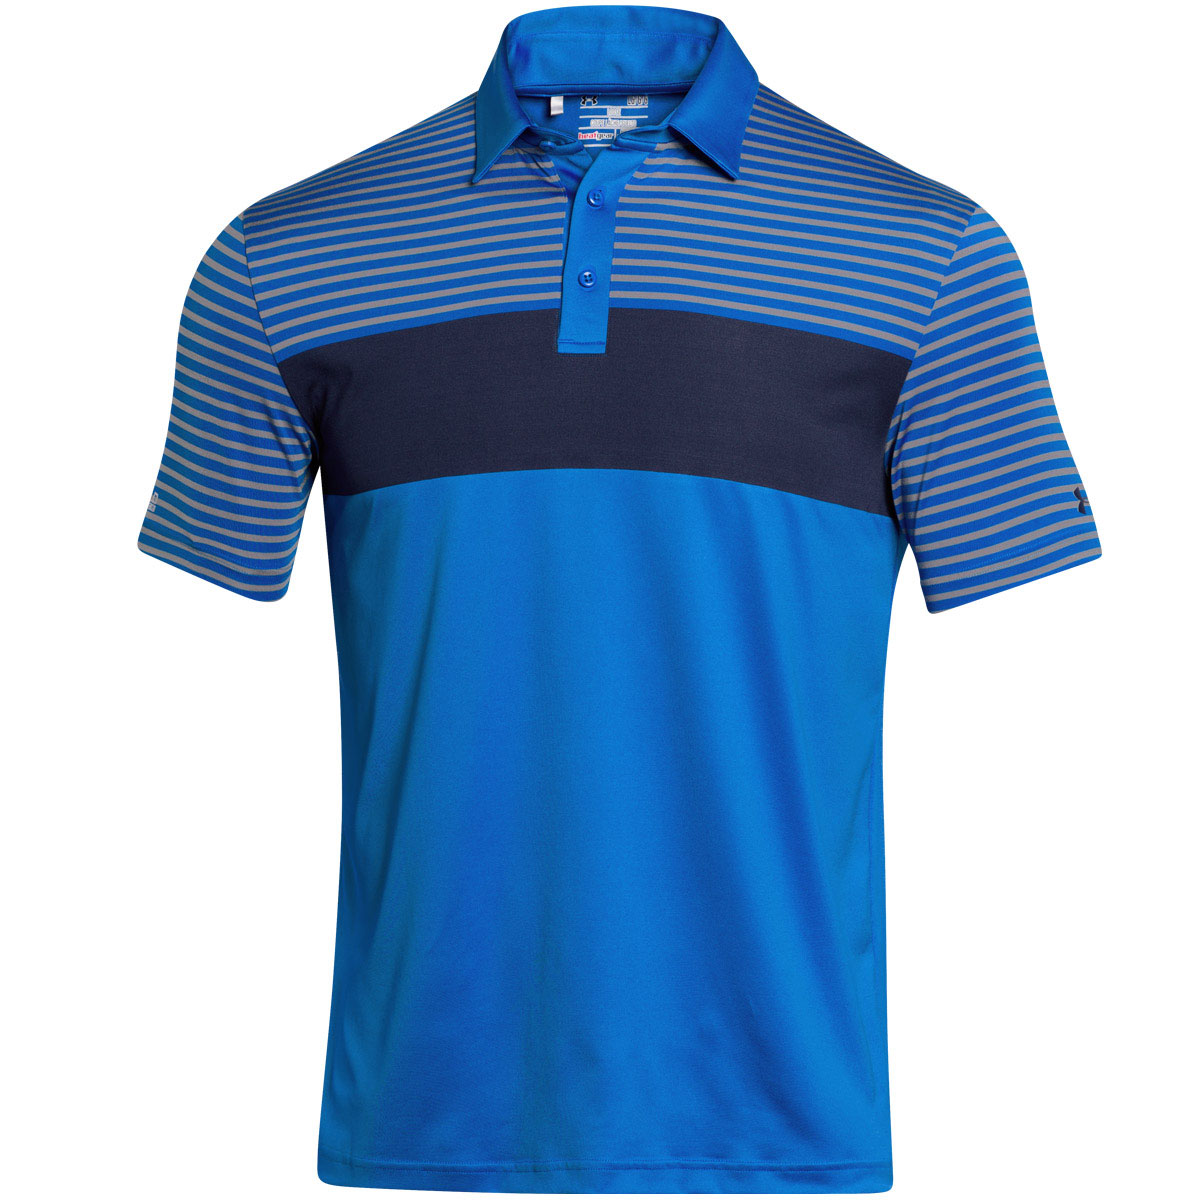 Under armour 2015 mens 39 jordan spieth masters 39 golf polo for Mens under armour golf shirts